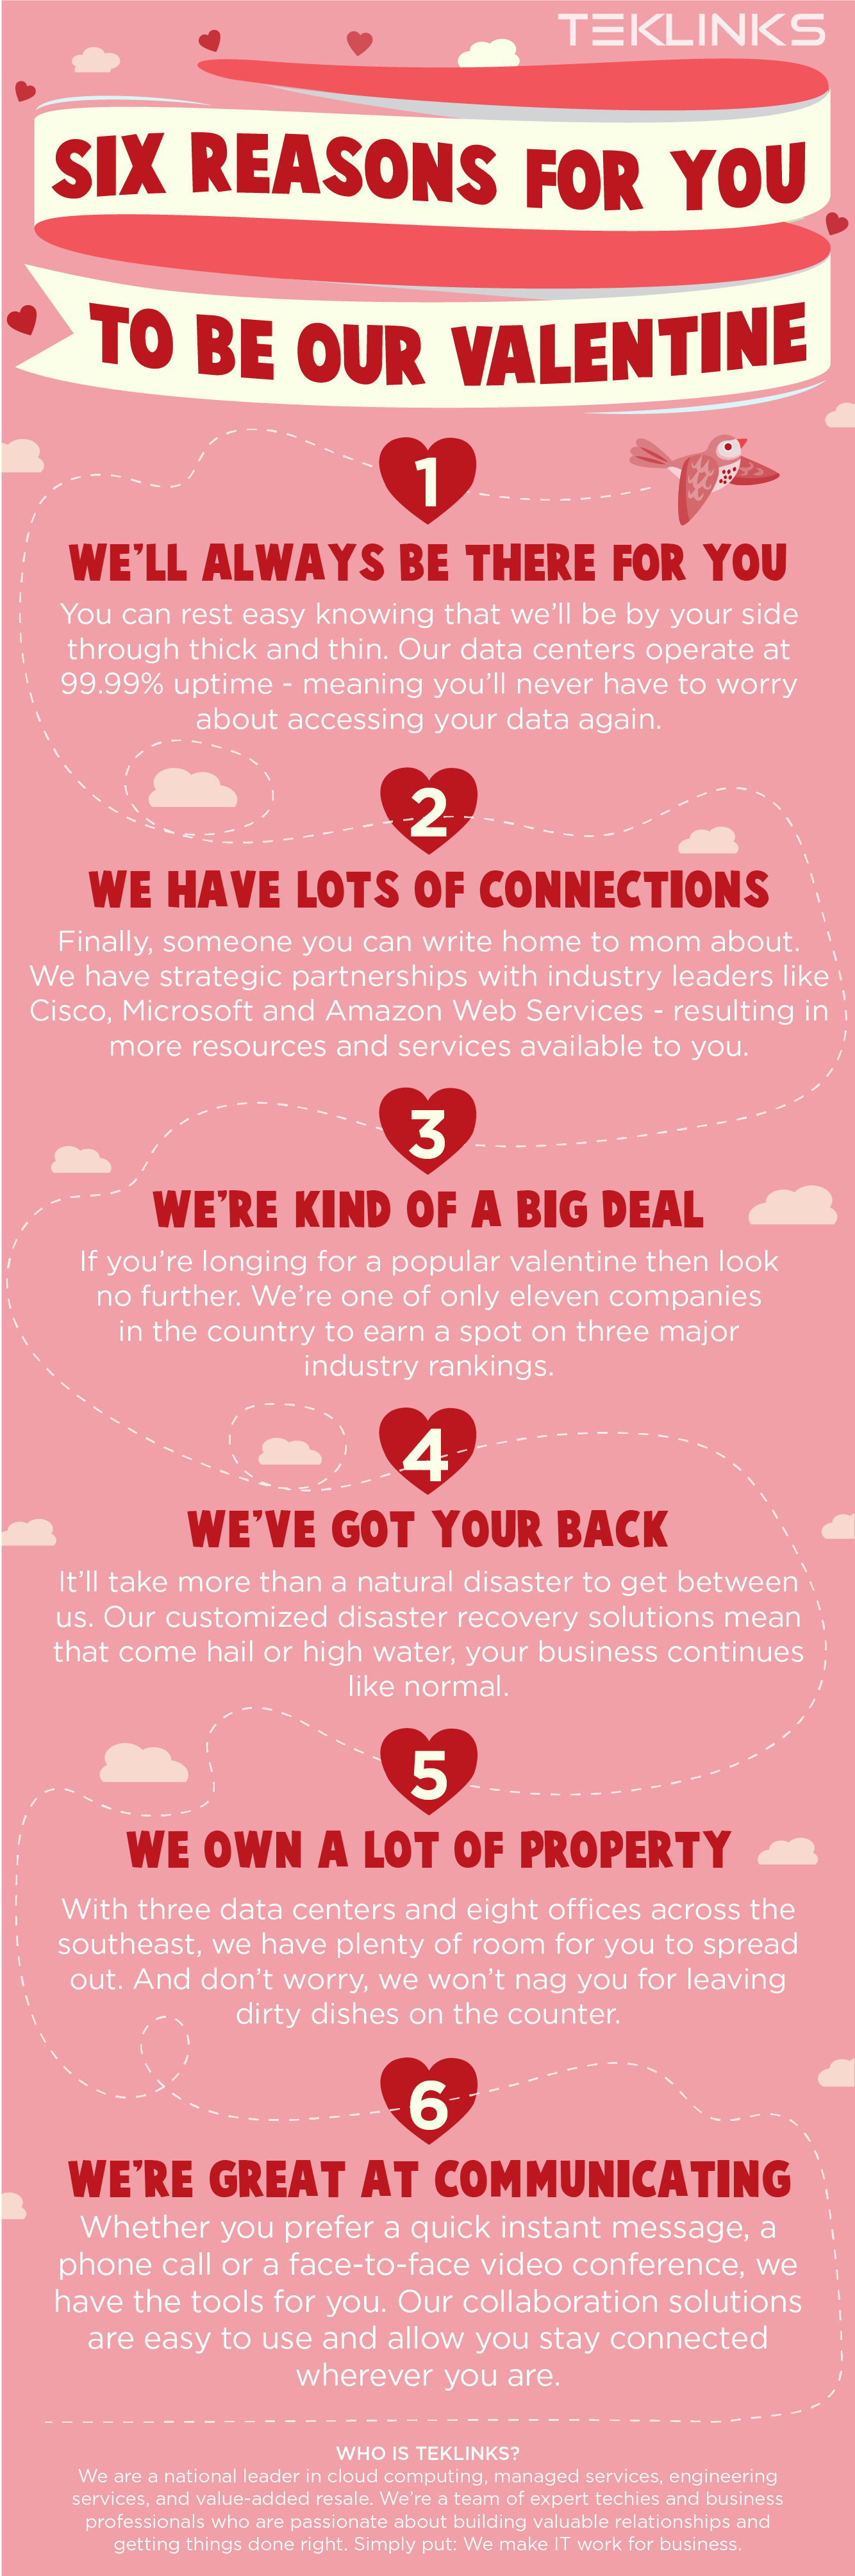 Six reasons for you to be our valentine.